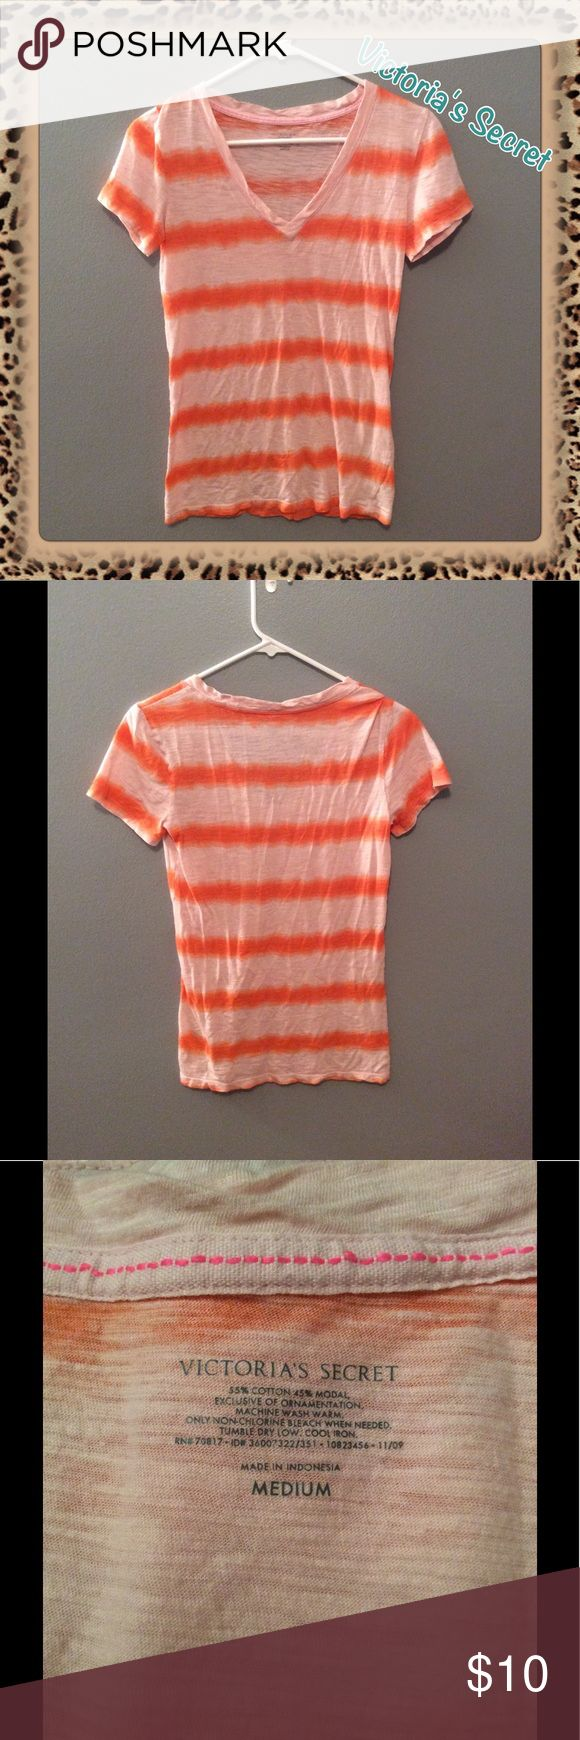 EUC Victoria's Secret V-Neck Tee Excellent used condition (maybe even NWOT, can't remember) - has been stored in a tote; no marks, rips, holes, piling, etc. Please see last photo for material & washing info. No trades. Lowest price unless bundled. Comes from smoke & pet free home. Don't hesitate to ask any questions! Victoria's Secret Tops Tees - Short Sleeve